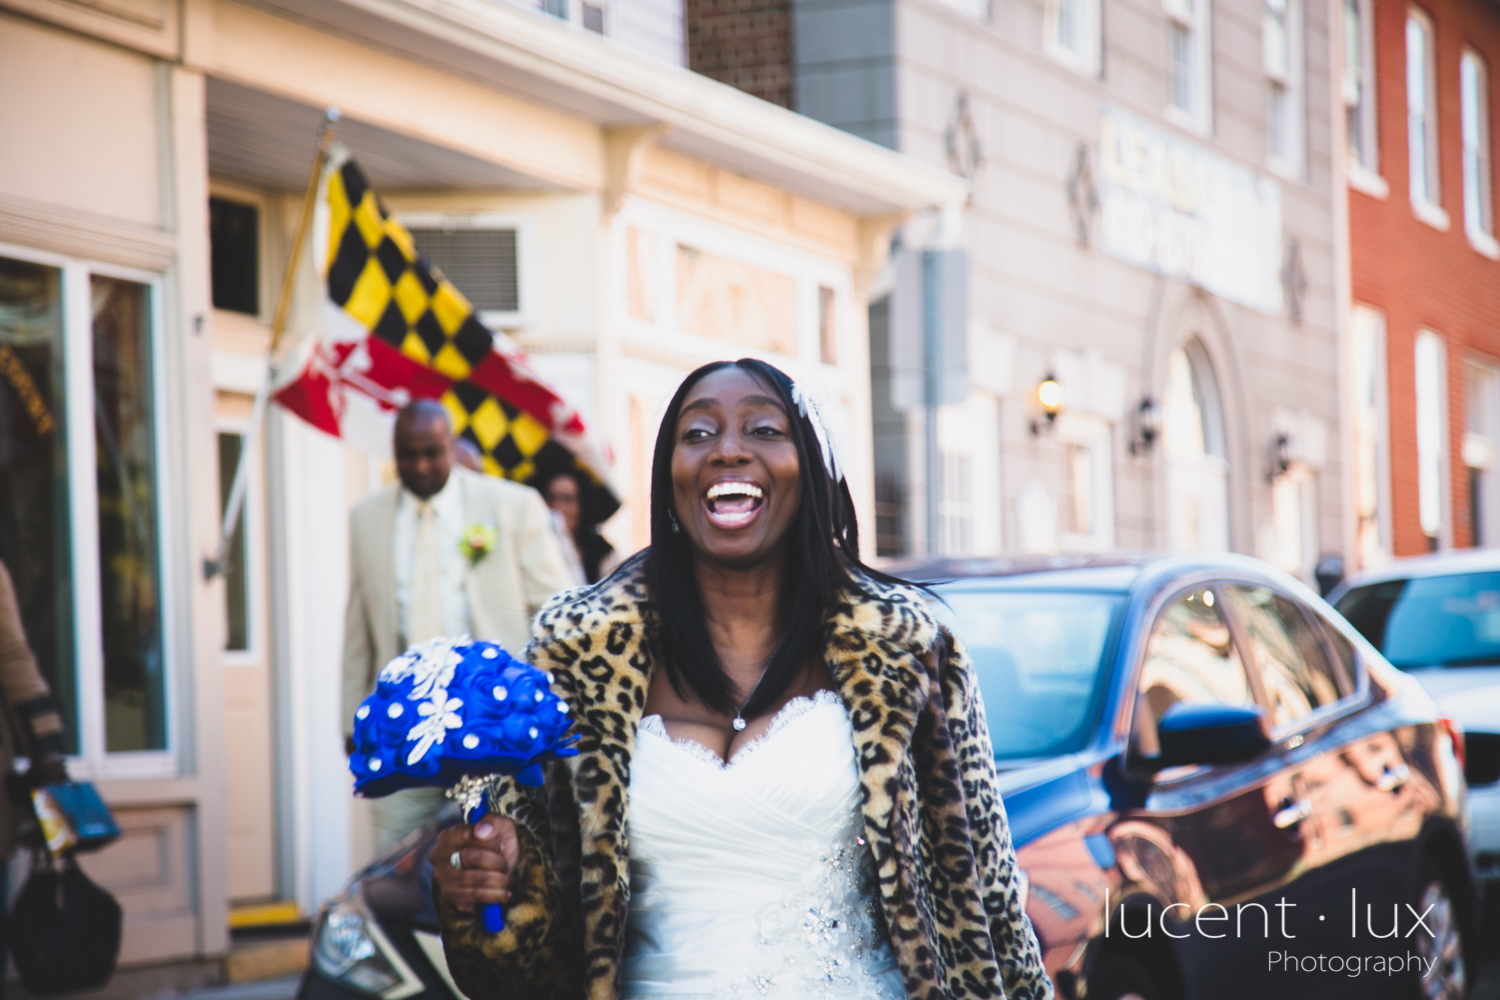 Harford_County_Courthouse_Bel_Air_Maryland_Wedding_Photographer_Maryland_Wedding_Photography-139.jpg